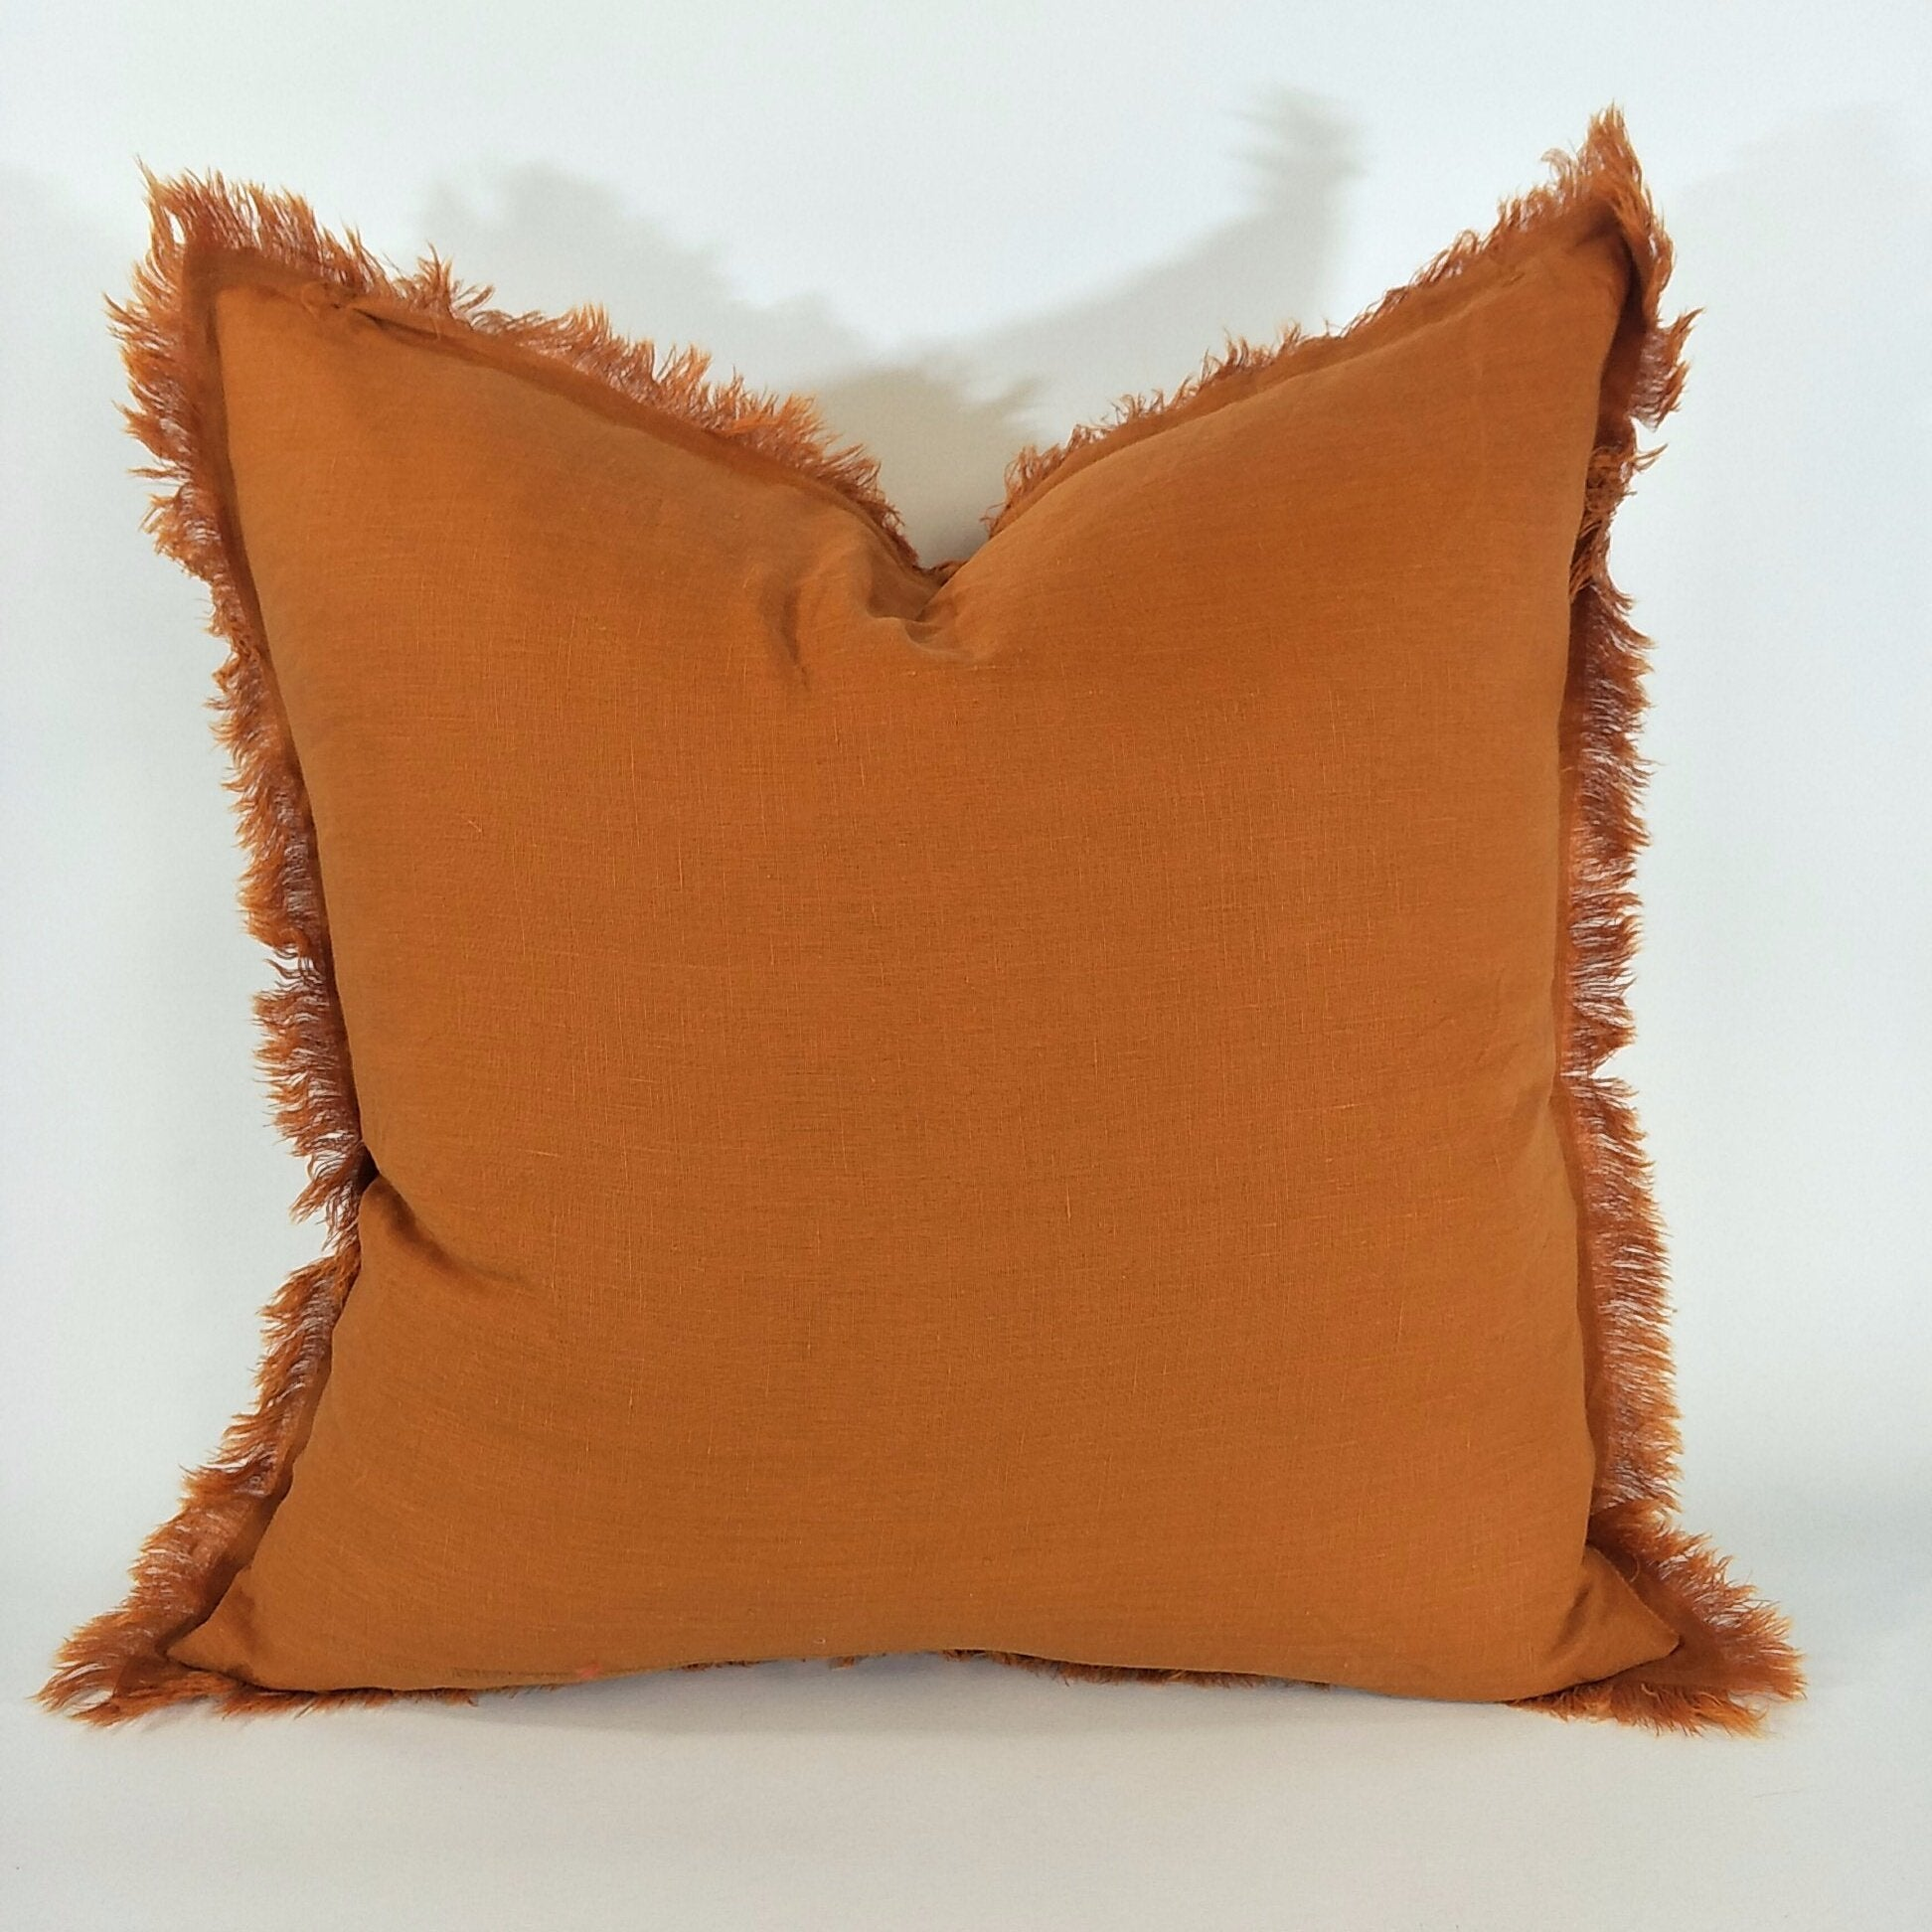 Cushion 100% French Linen Fringed Feather Inserts Turmeric 50 x 50cm